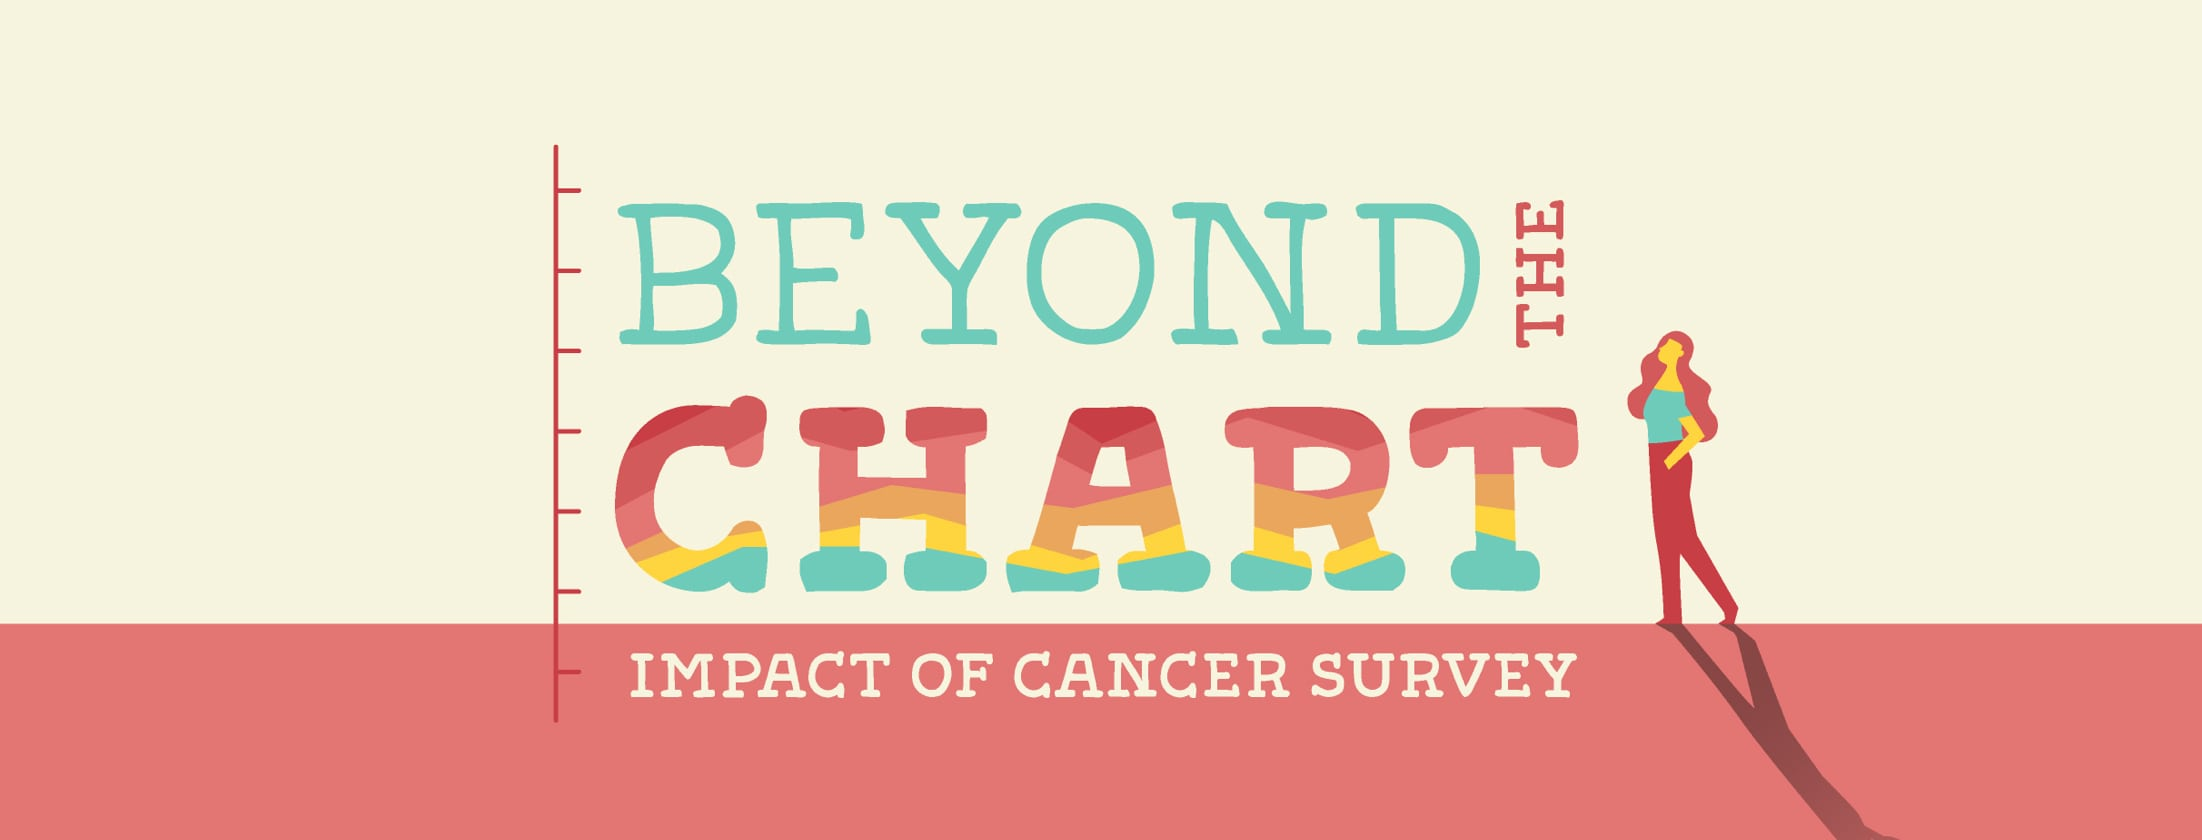 Cancer: Beyond the Chart